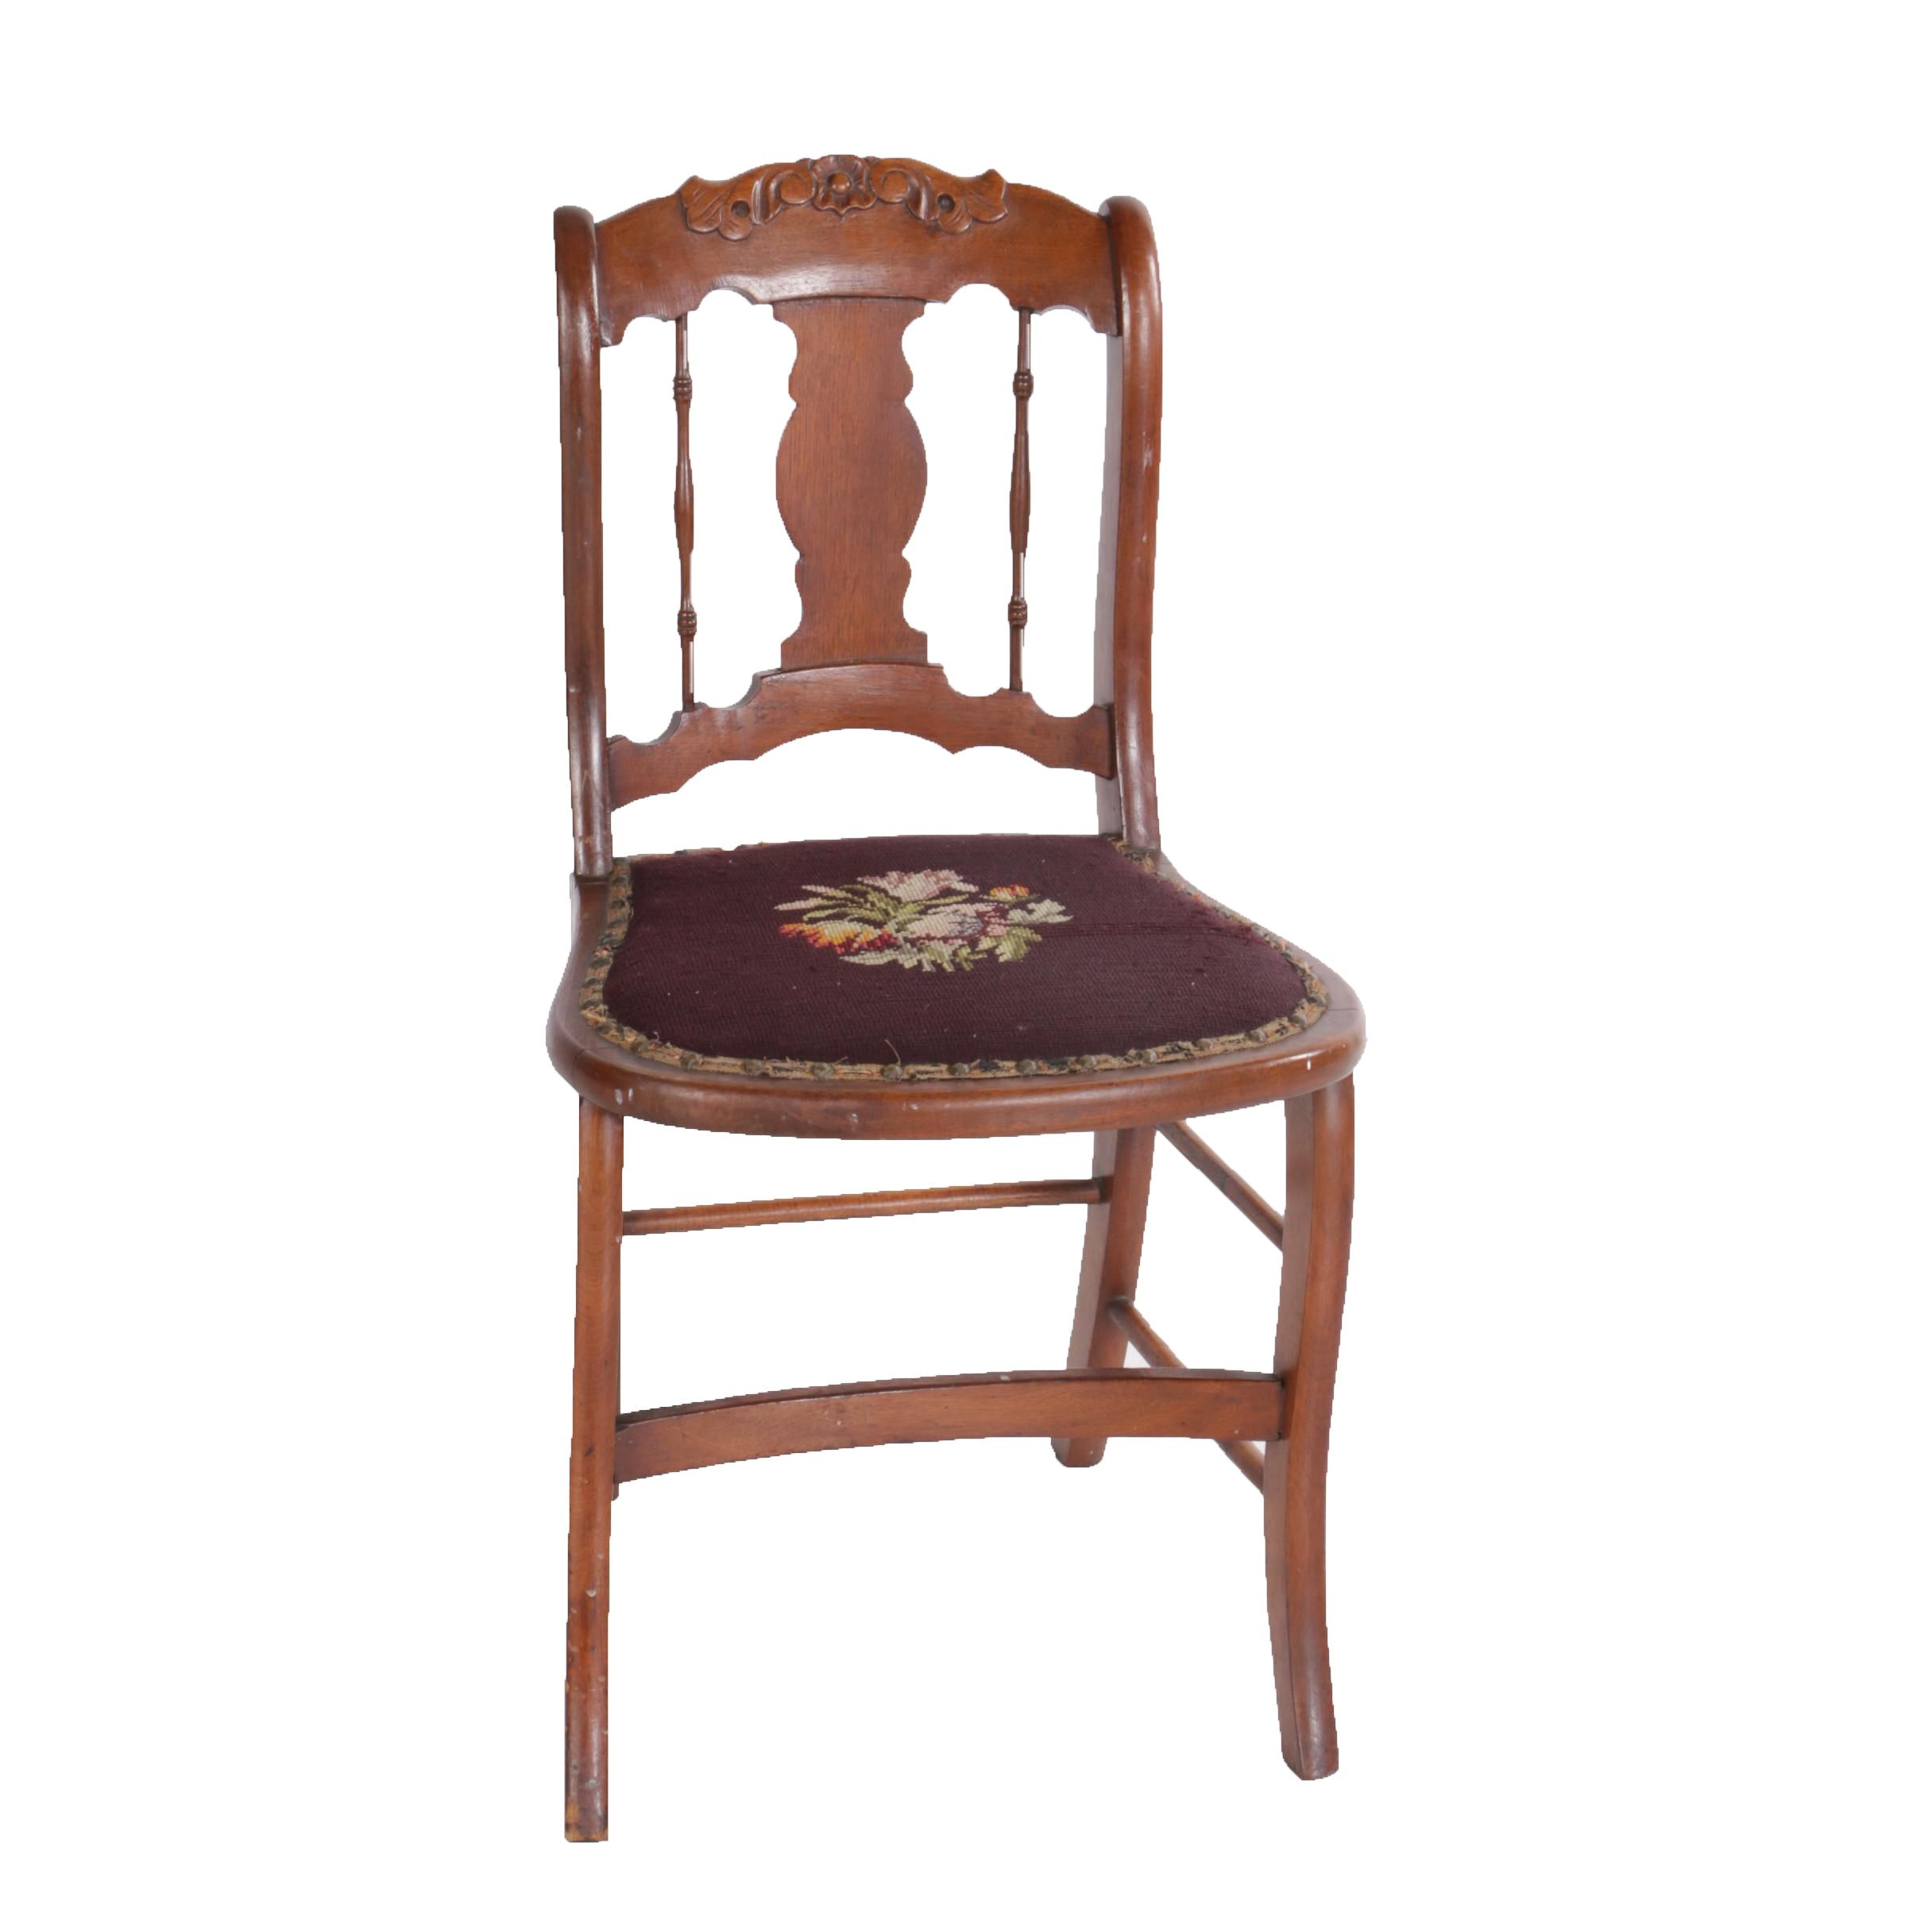 Antique Victorian Carved Dining Chair with Needlepoint Seat